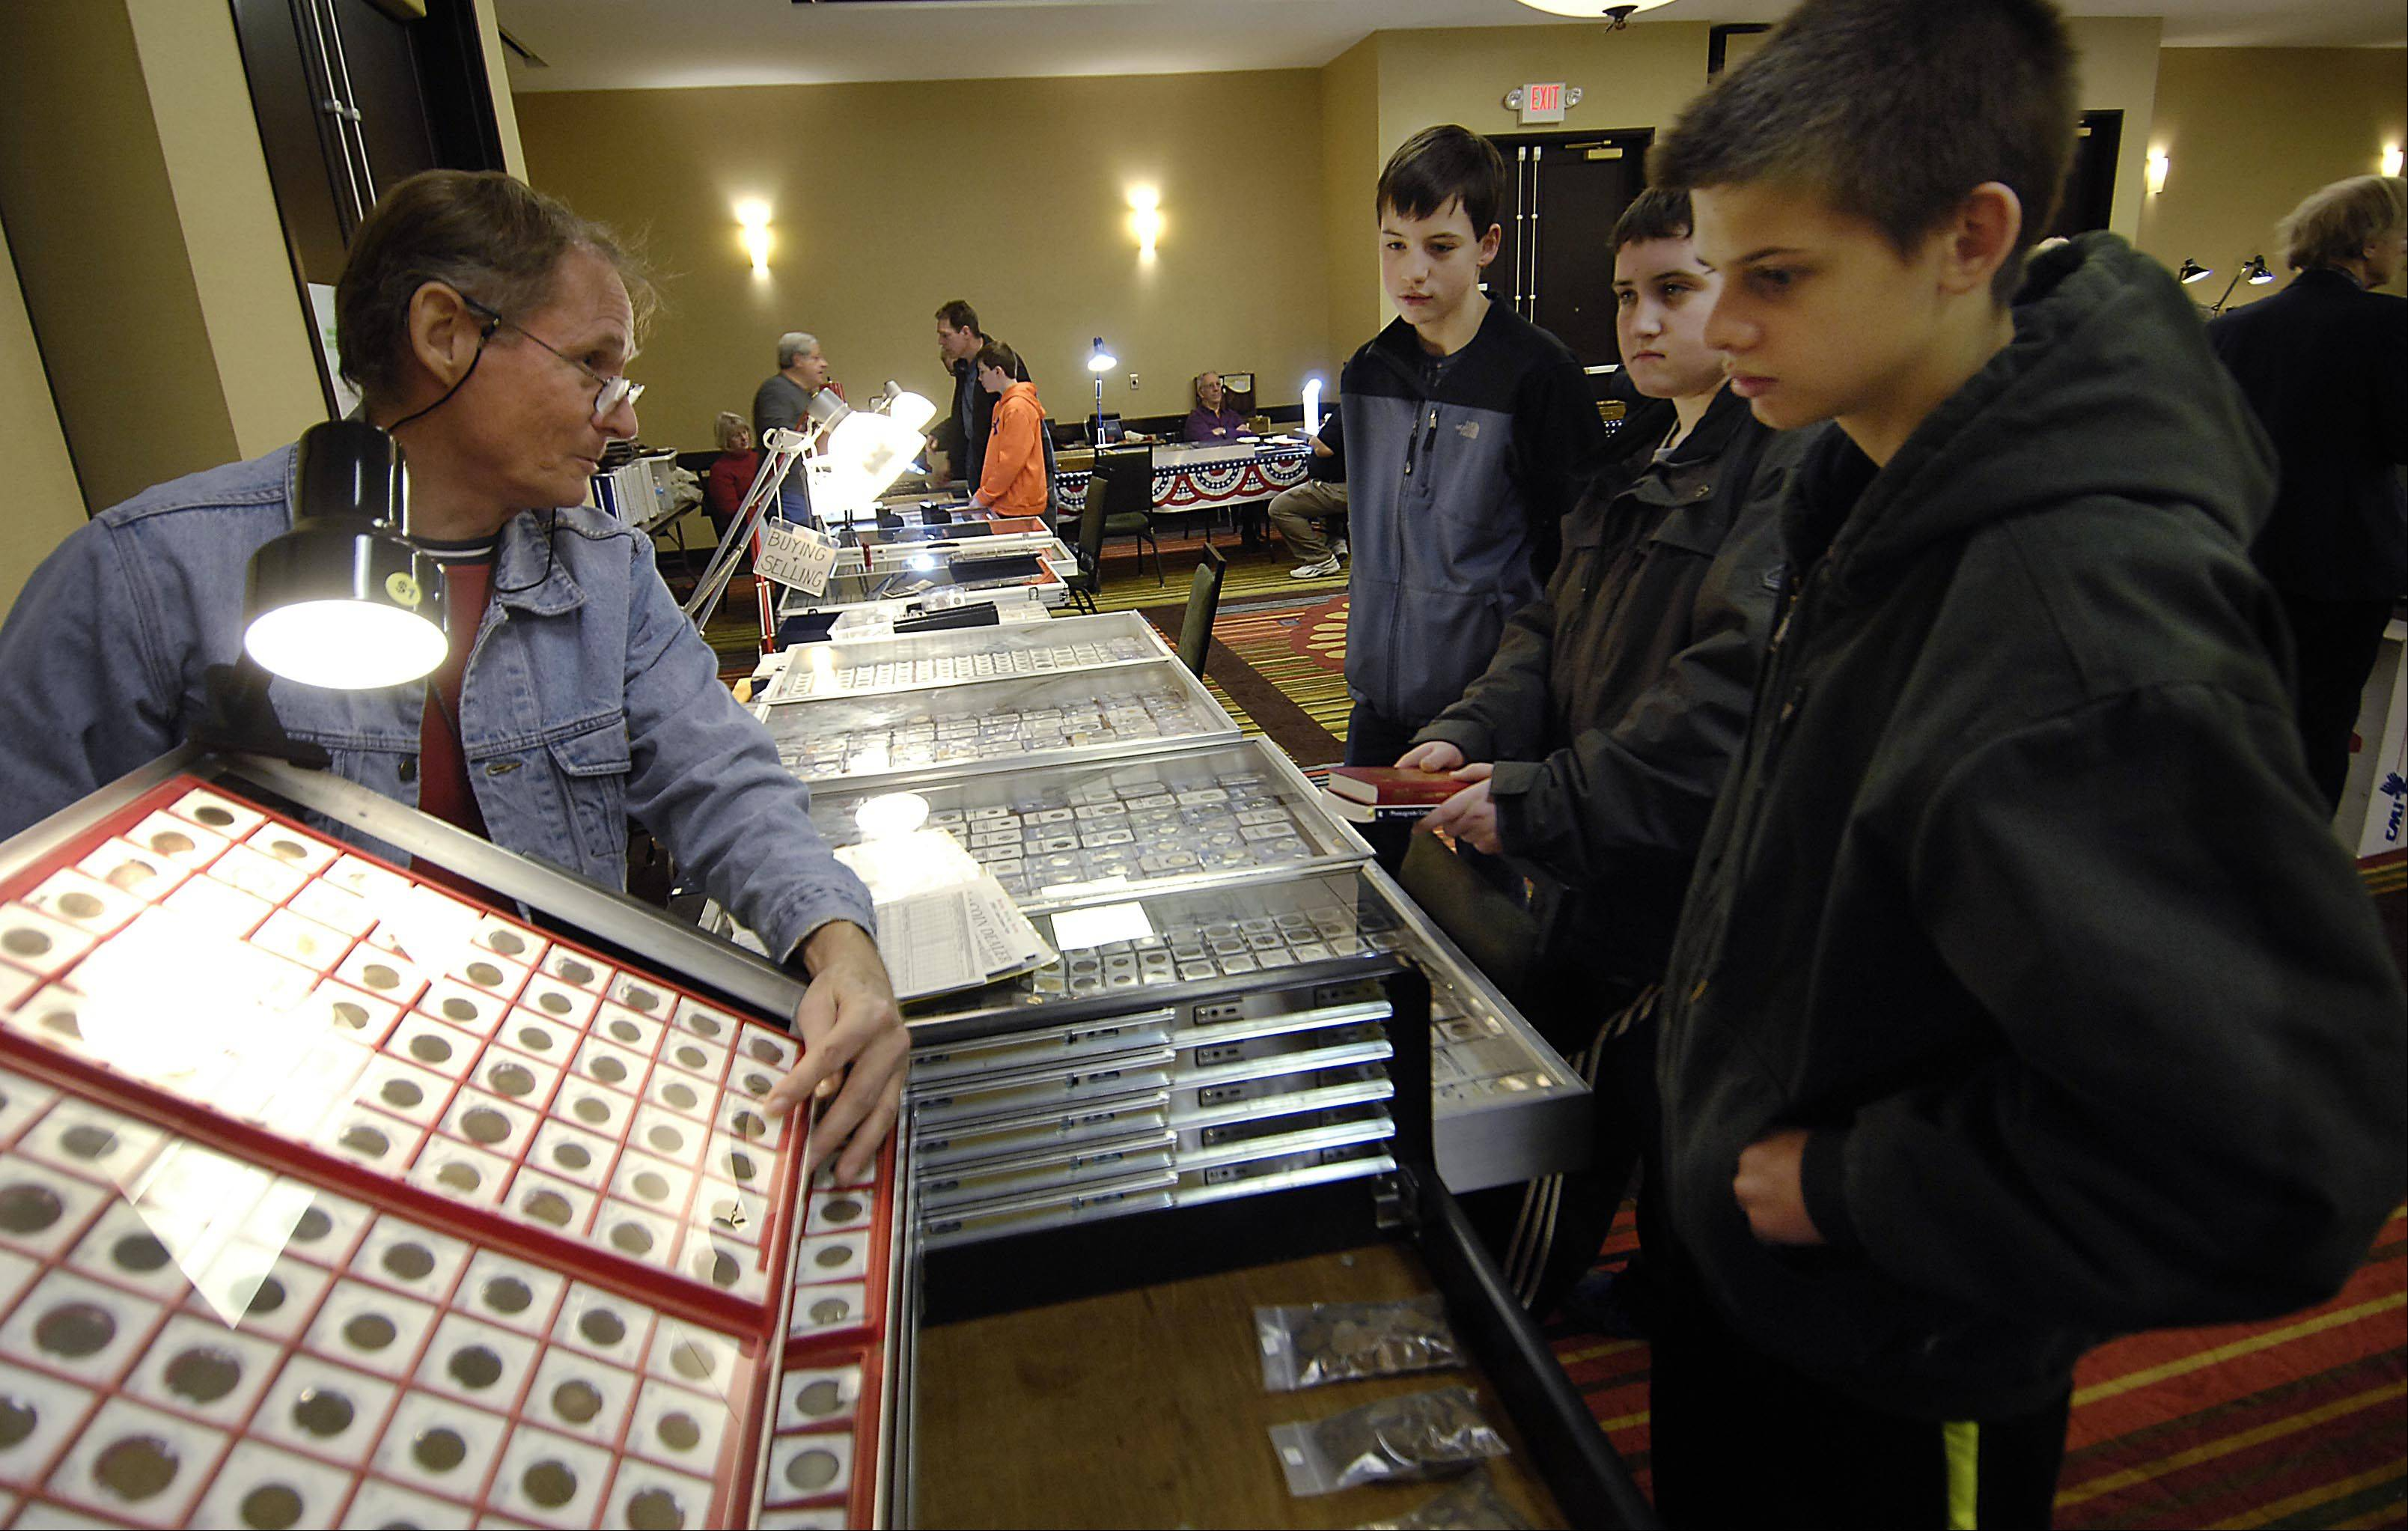 Coin dealer Fred Dennis, of Geneva, talks with 13-year-olds Connor Bystrom, Alex Kelly and Marshall Bott, friends from Lake Zurich, Sunday at the Geneva Coin Club's Mid-Winter Classic Coin Show at the Holiday Inn on Airport Road in Elgin. Dennis is the club chairman.